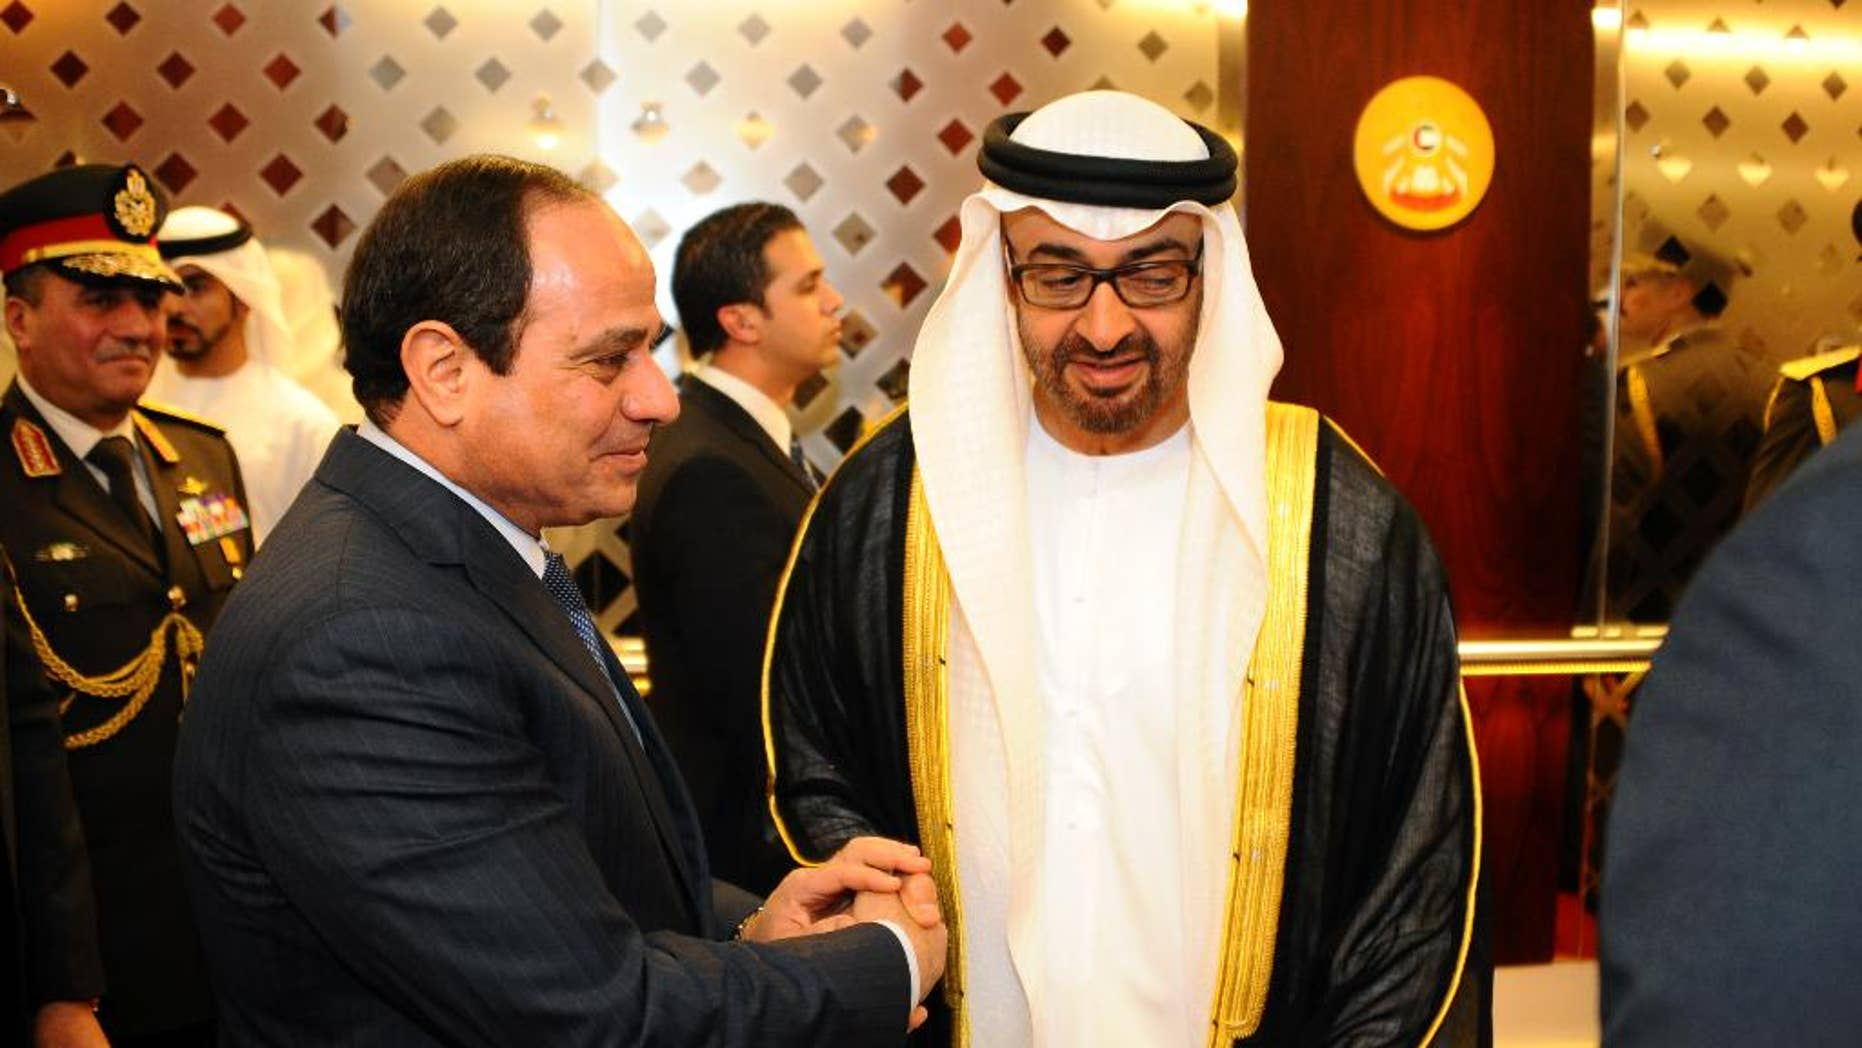 In this Saturday, Jan. 17, 2015 photo, Egyptian President Abdel-Fattah el-Sissi, left, shakes hands with Abu Dhabi crown prince, Sheikh Mohammed bin Zayed Al Nahyan, in Abu Dhabi, United Arab Emirates. The first official visit by El-Sissi reflects the strong support the Emirates has given el-Sissi's government since he was elected in June after leading the 2013 military overthrow of Islamist President Mohammed Morsi. (AP Photo/MENA)